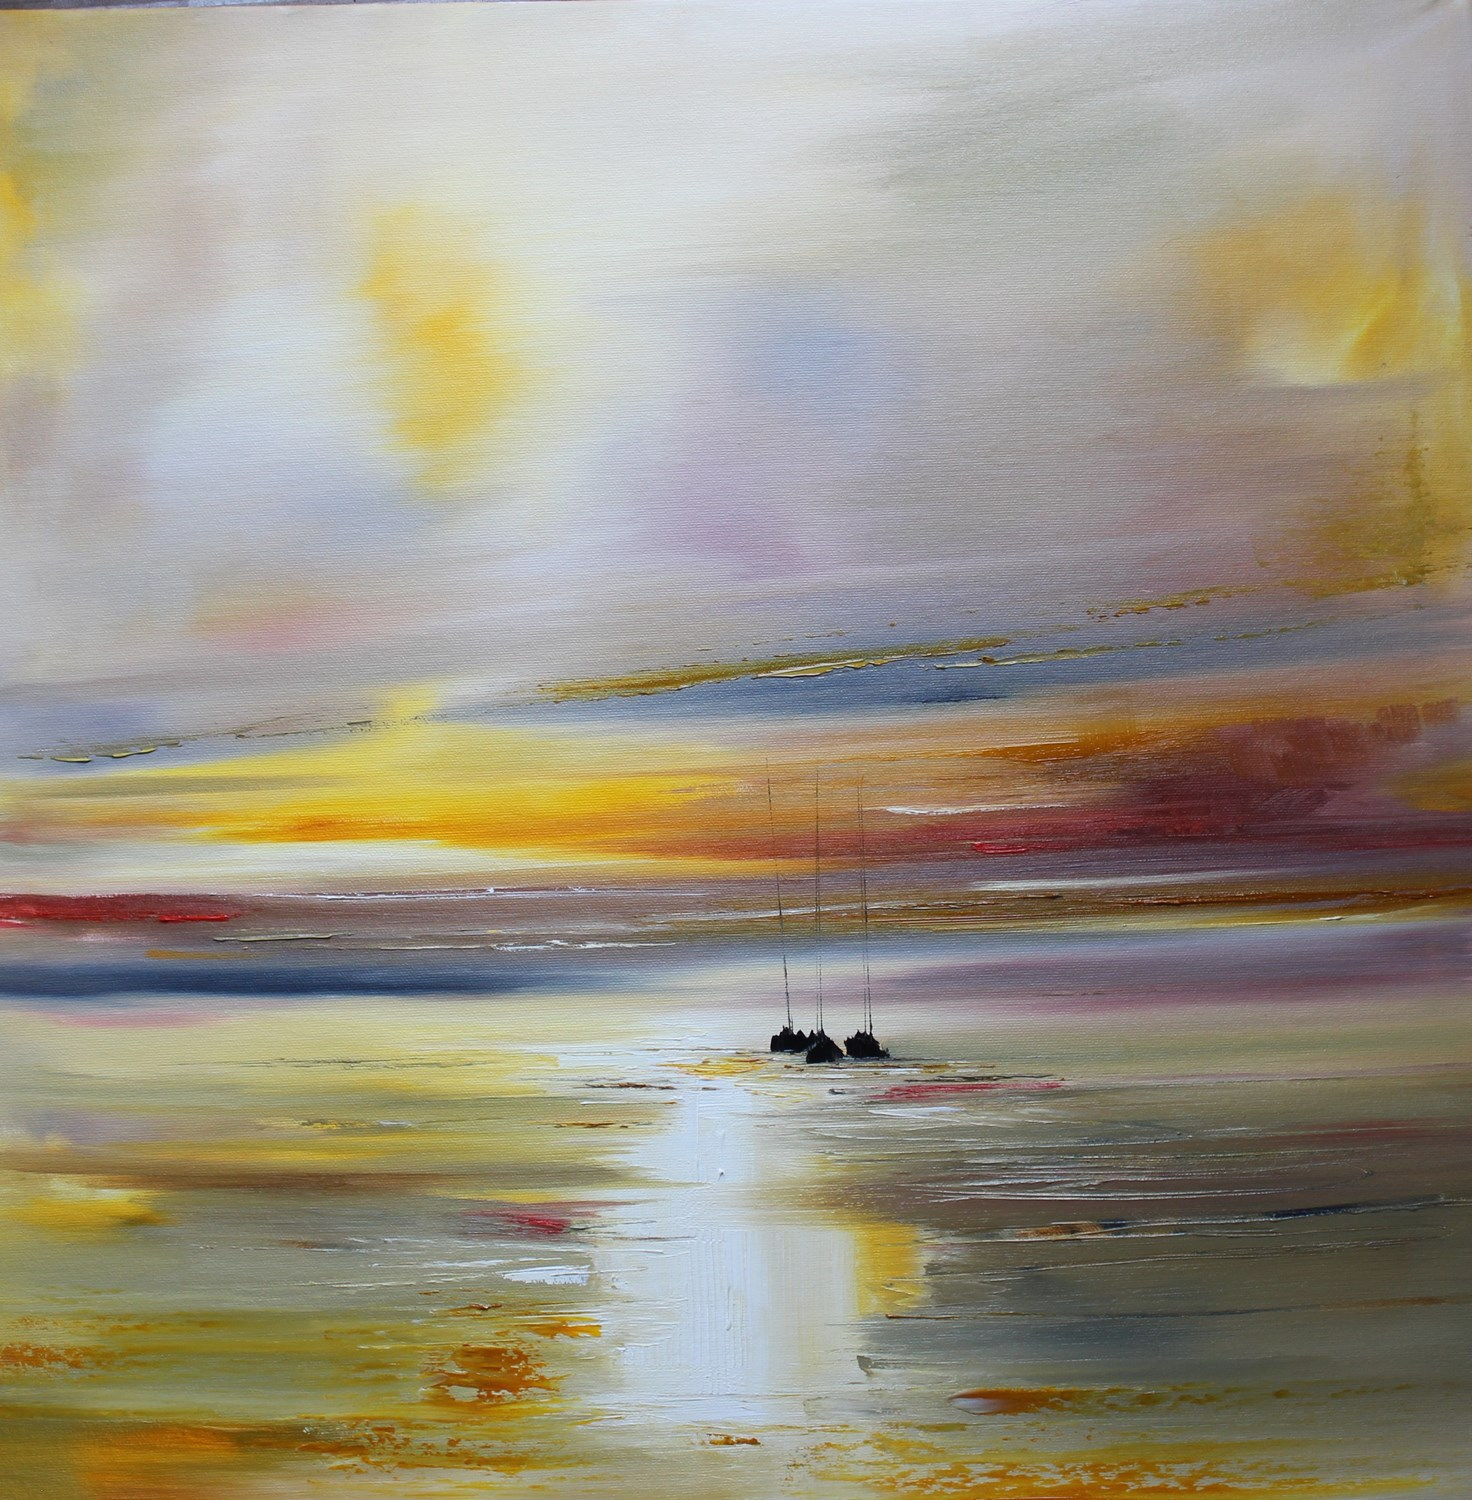 'A Path of Light on the Sea' by artist Rosanne Barr